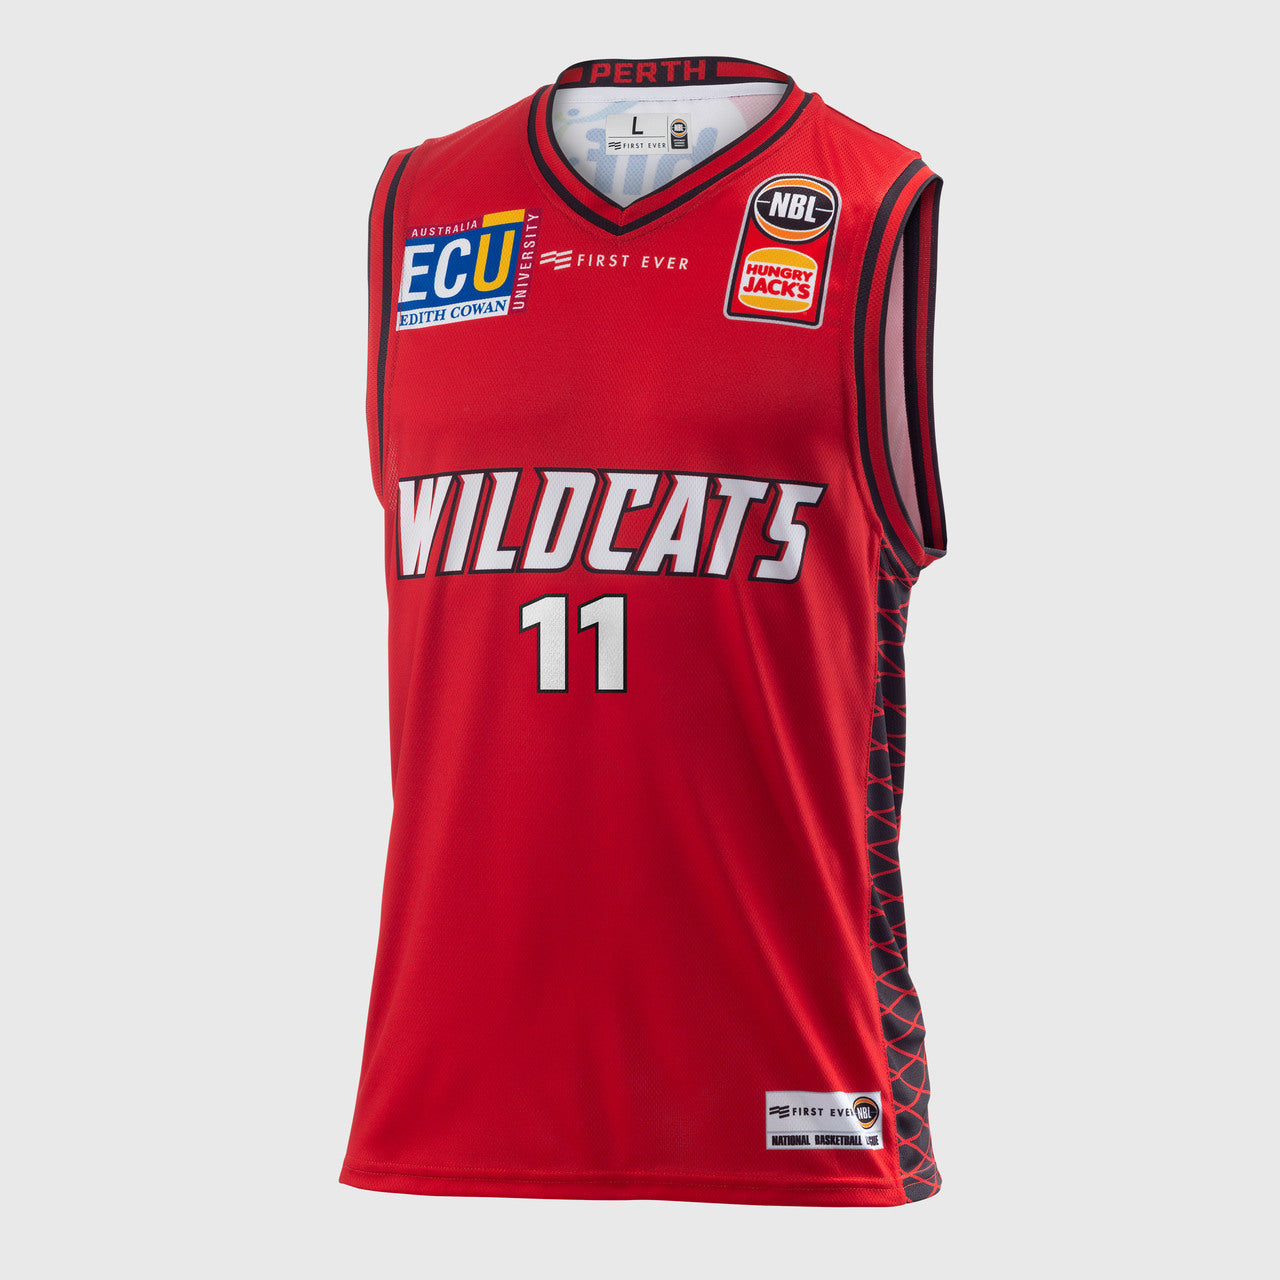 Perth Wildcats 18/19 Authentic Jersey - Bryce Cotton